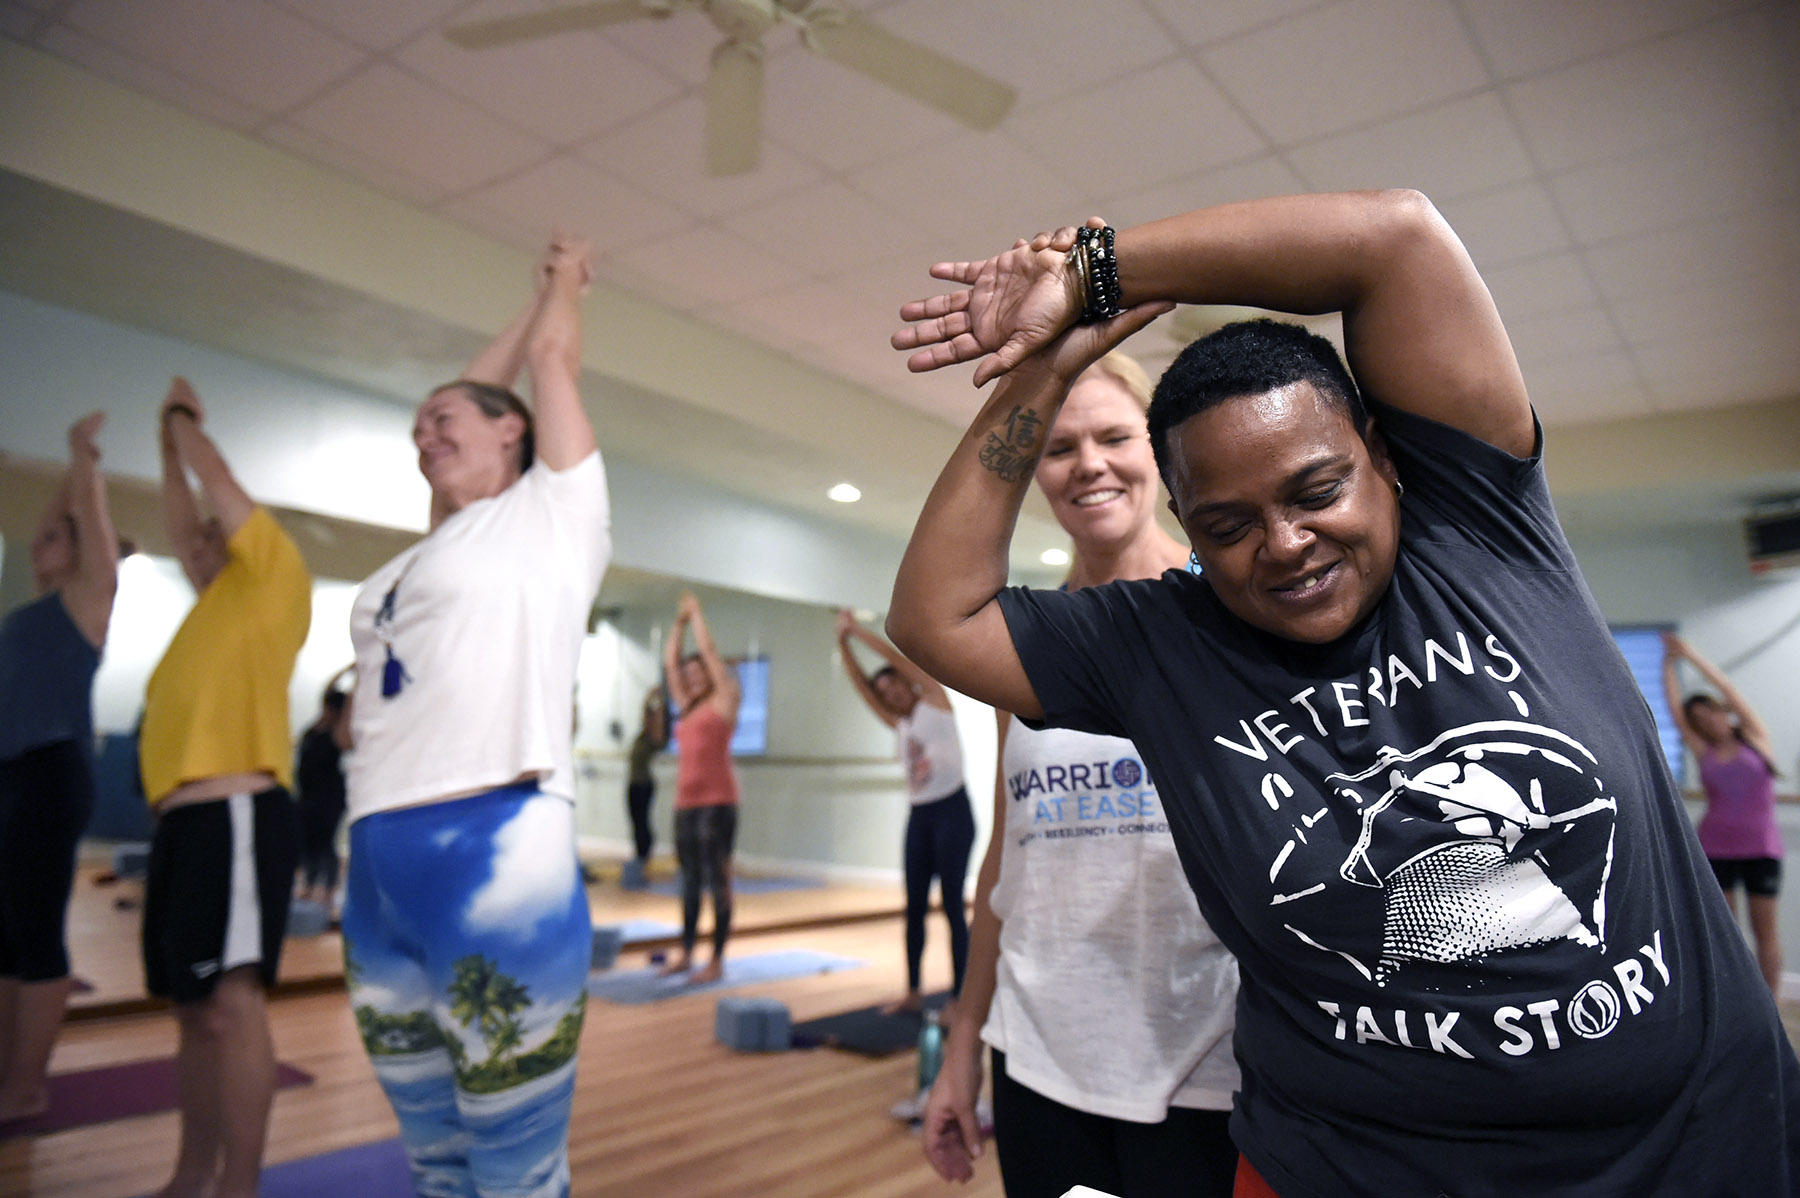 Cyndi Lee smiles while stretching as Susan Alden looks on during a yoga class created to help US military Veterans cope with PTSD called Warriors At Ease at the Bella Kai Yoga Studio in Kailua, Wednesday, November 7, 2018. (Civil Beat photo Ronen Zilberman)